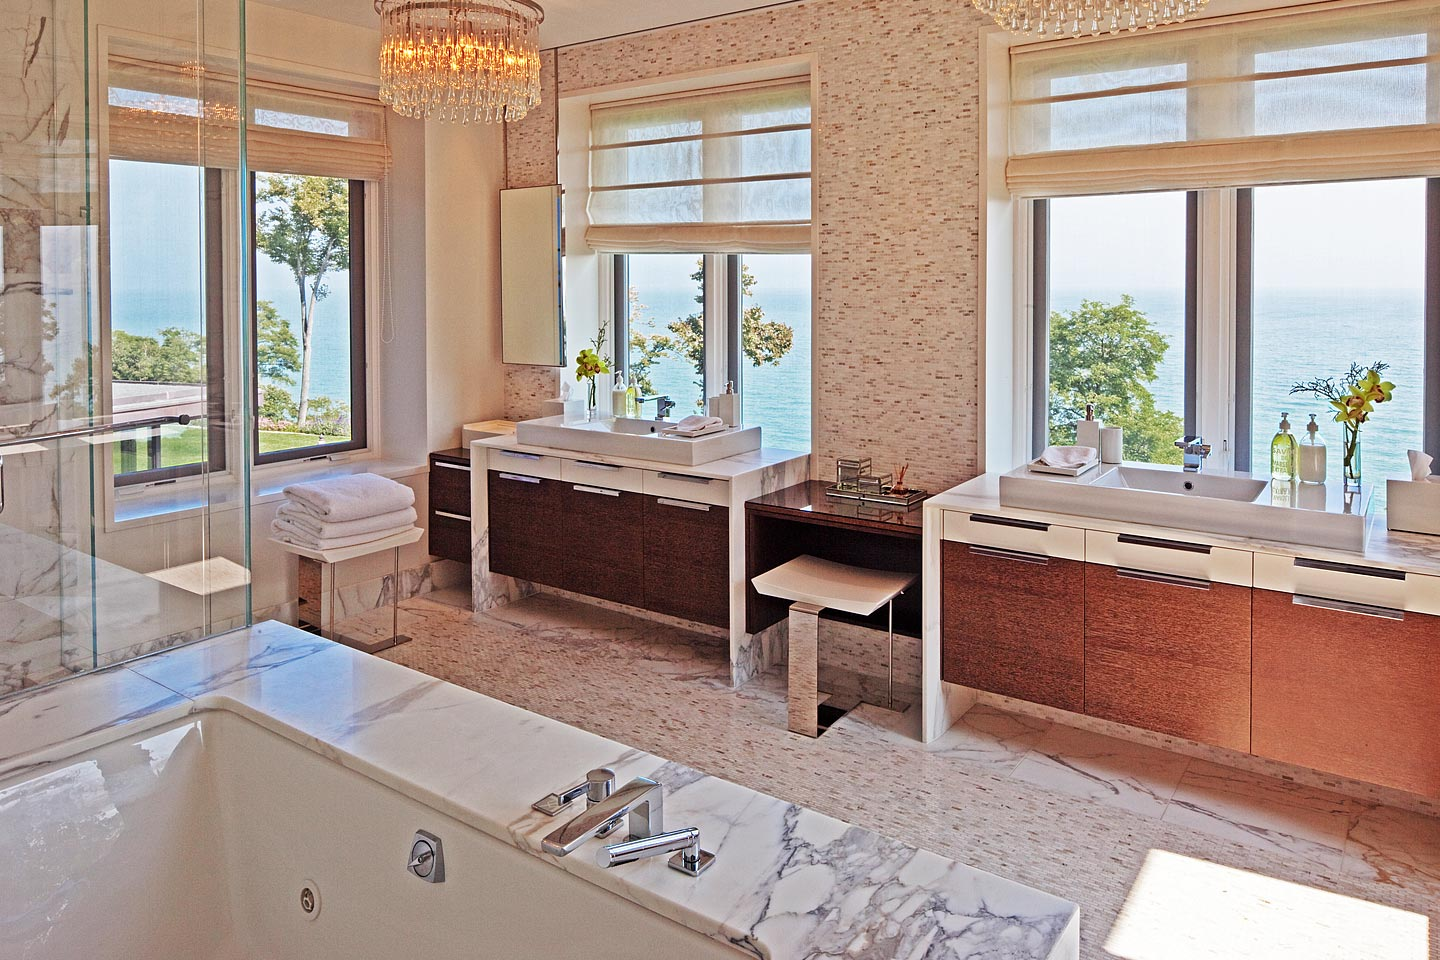 a large modern master bath, featuring an abundance of natural light and views of Lake Michigan, photographed by Jacob Rosenfeld